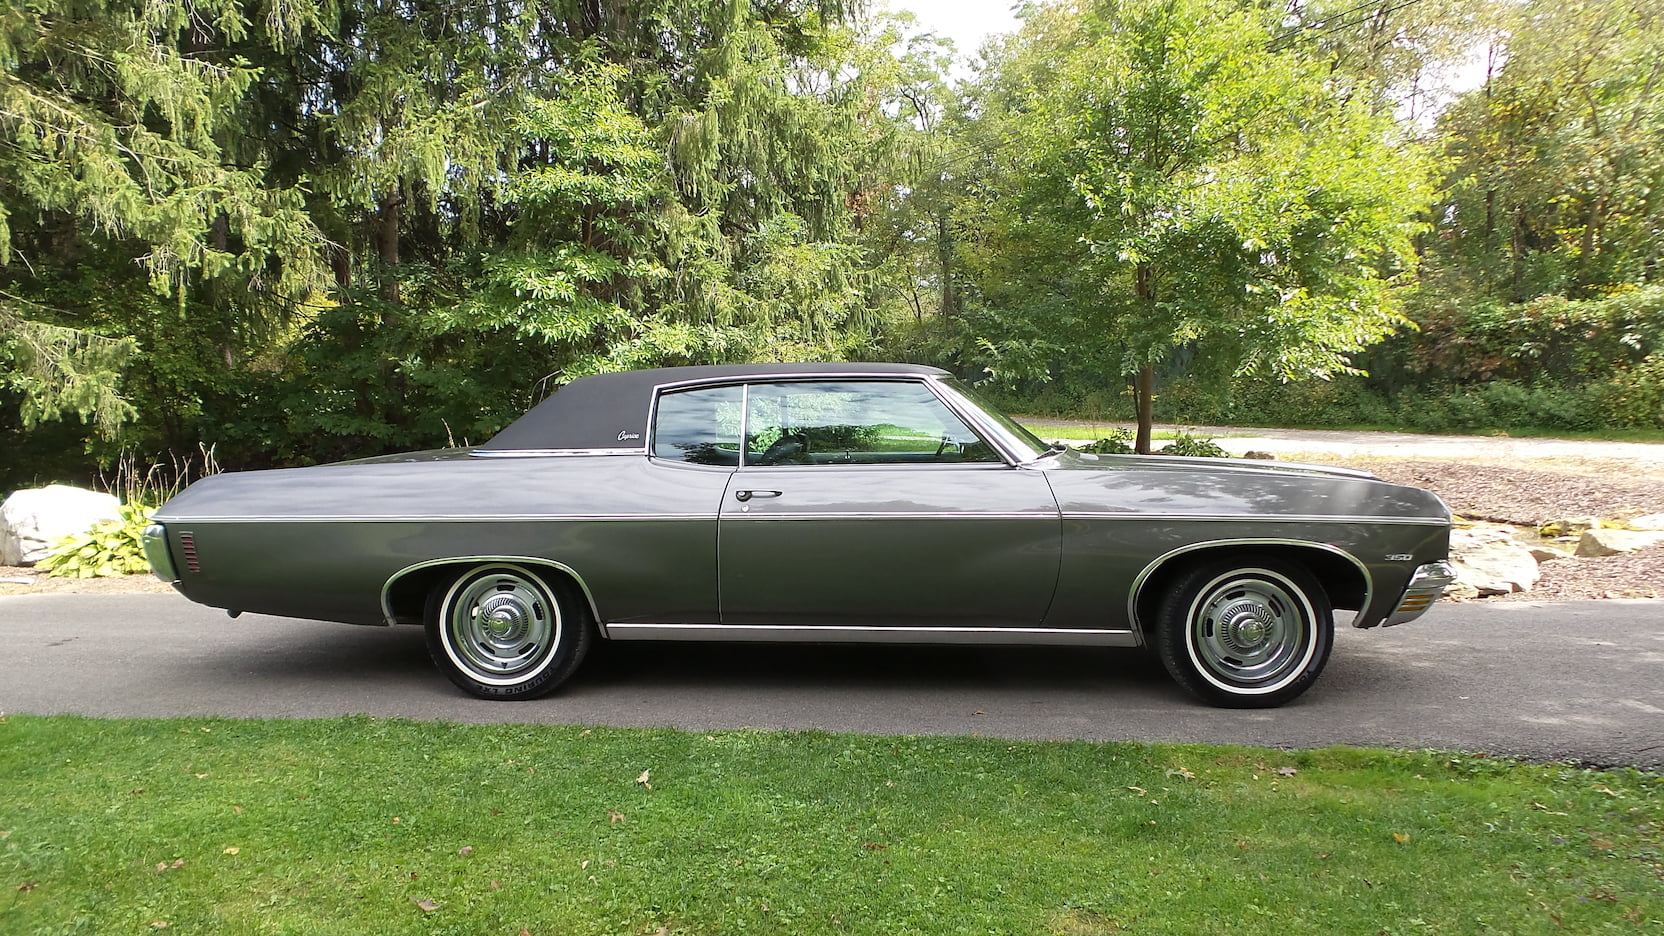 1970 Chevrolet Caprice profile